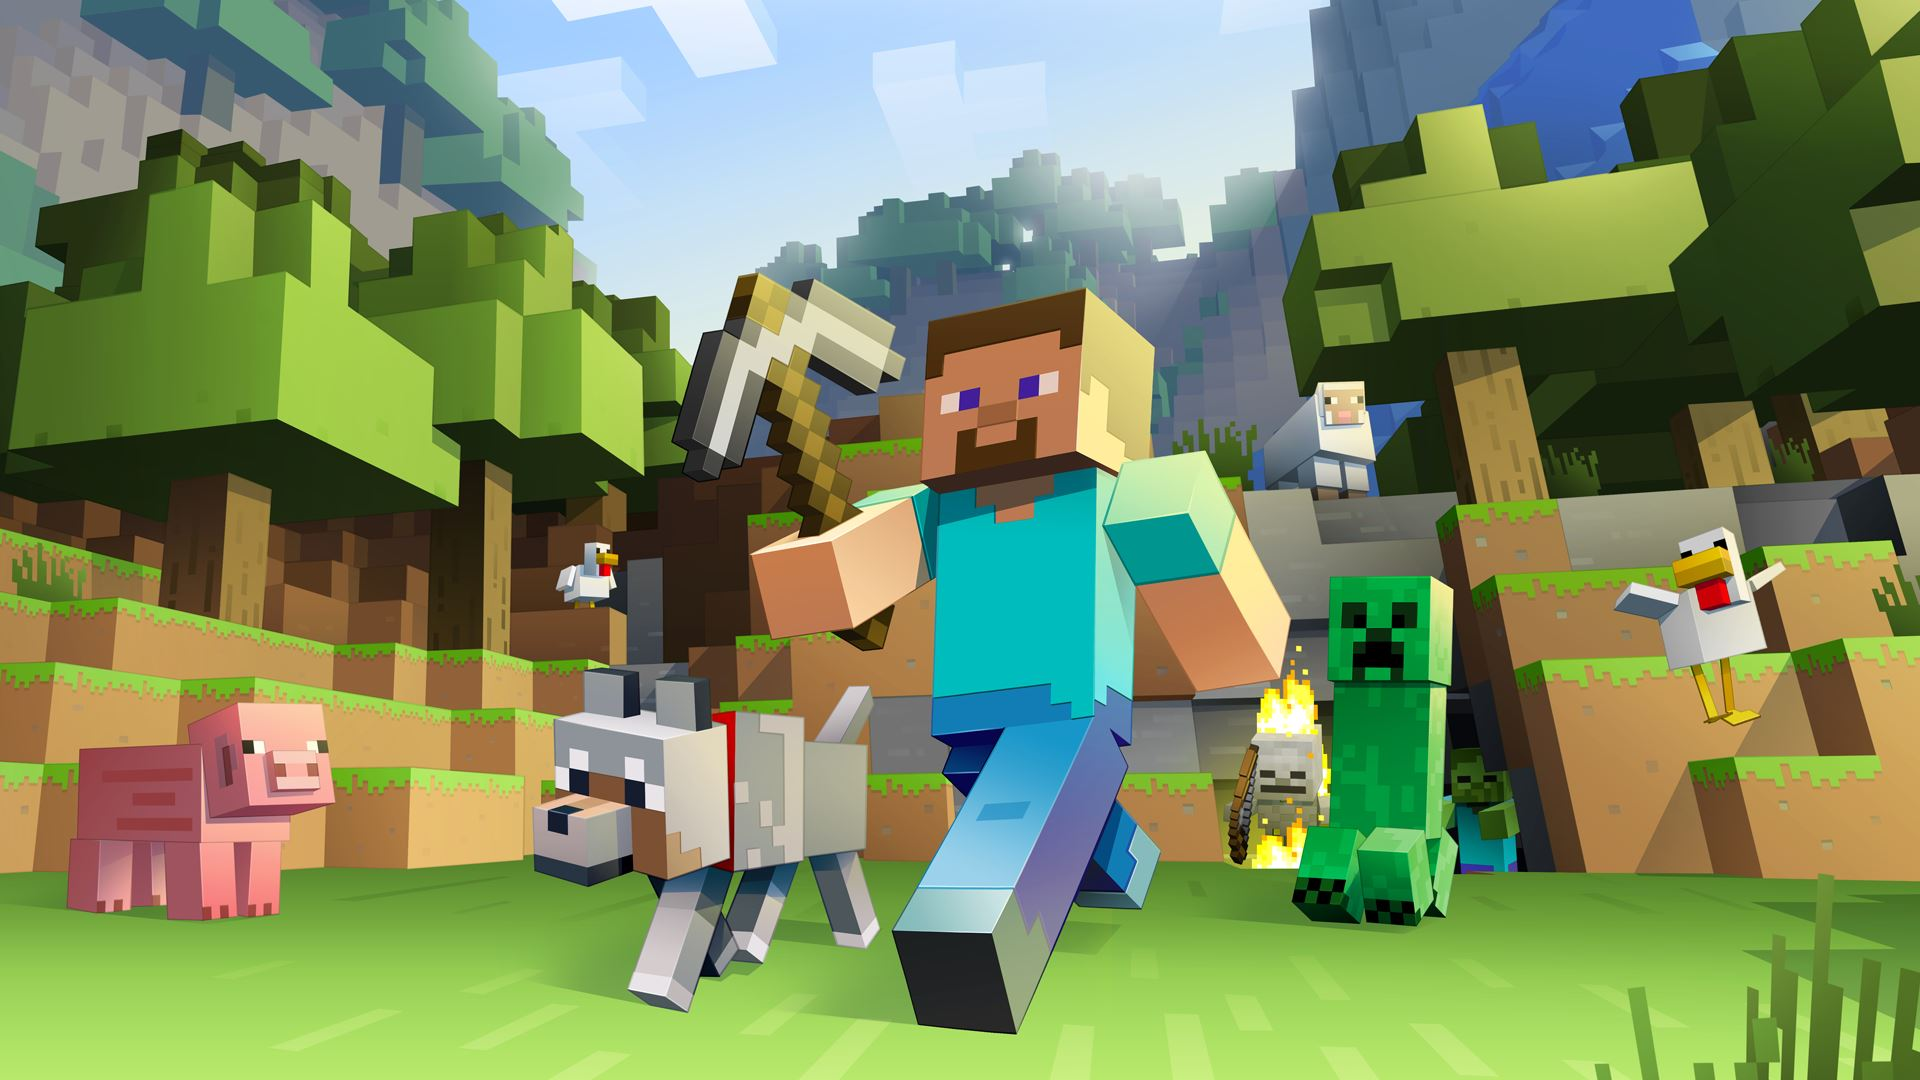 Minecraft for Apple TV is available for download